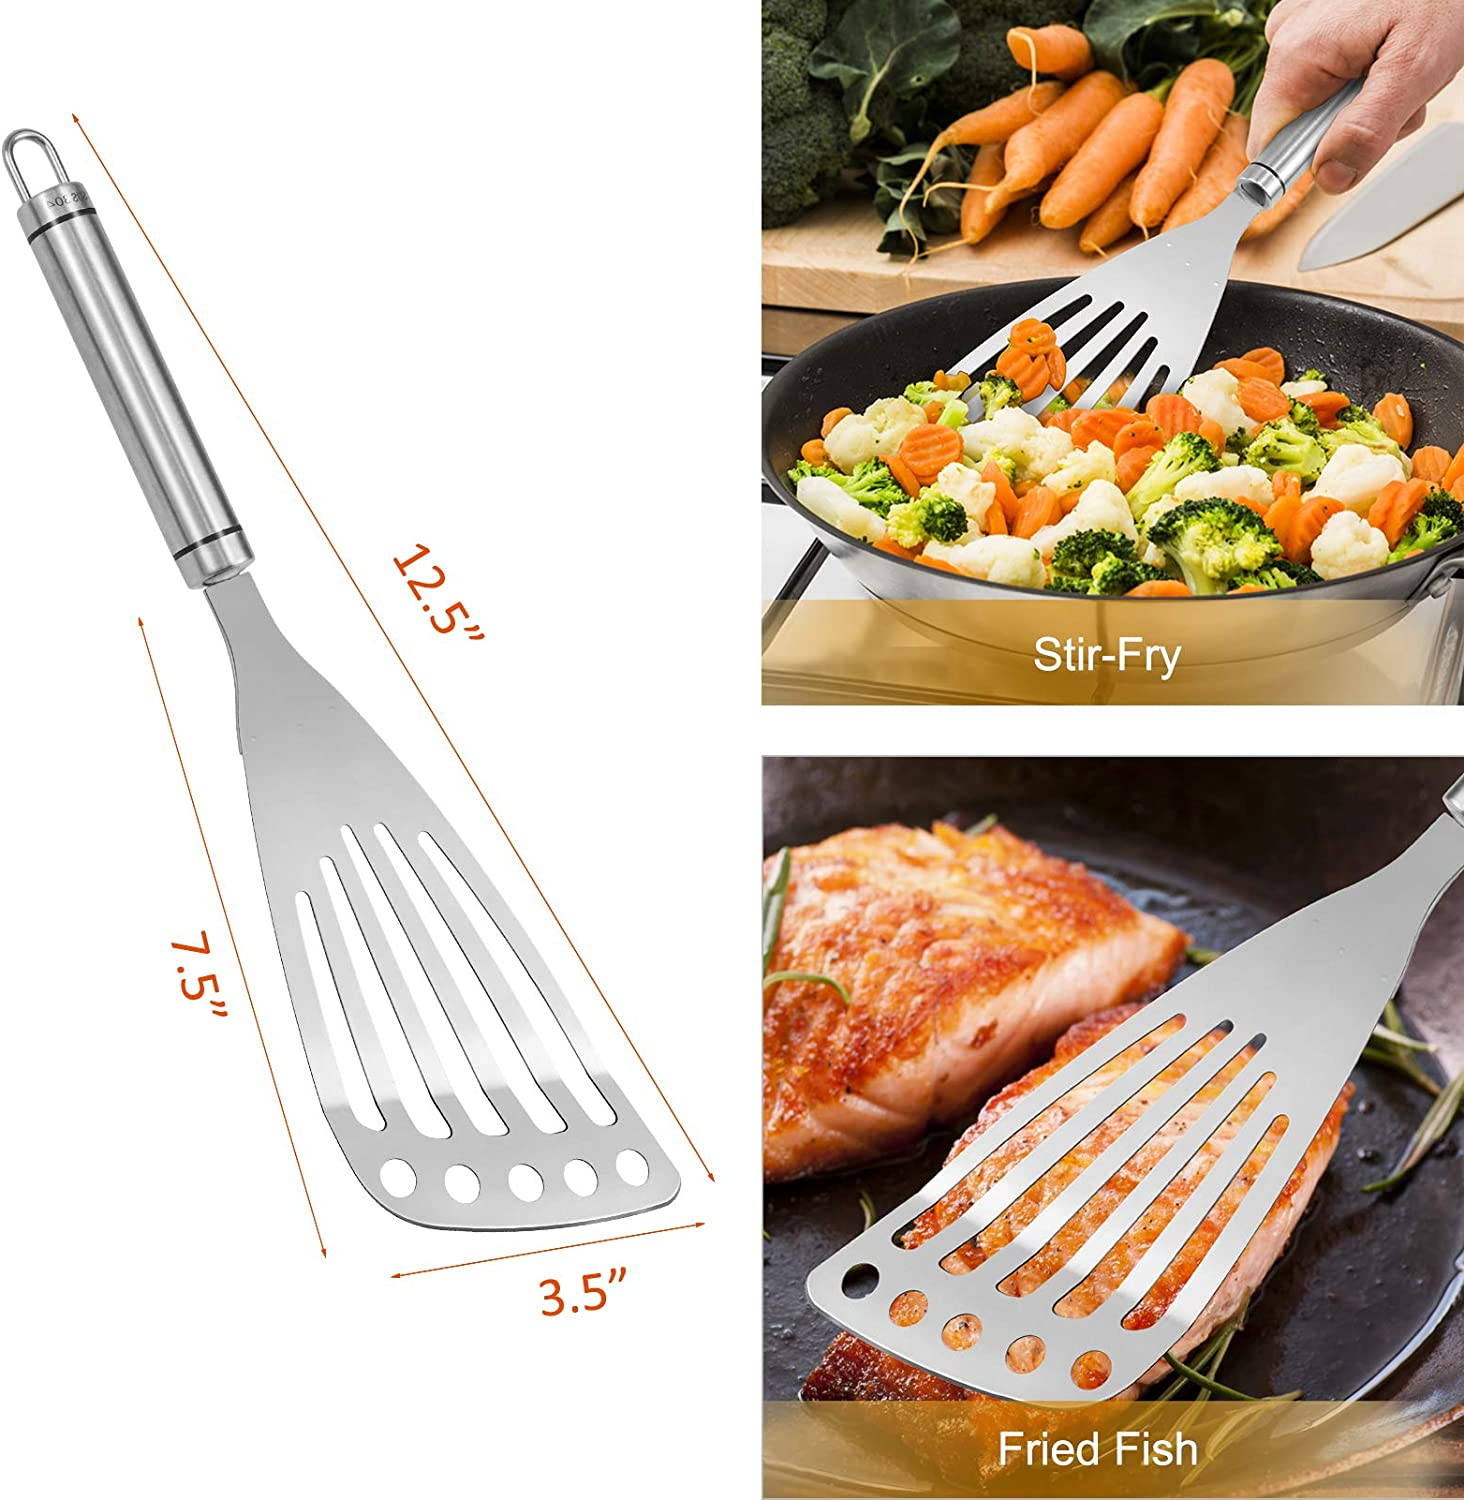 Flexible Stainless Steel Blade with Beveled Edge Turning Palksky 2-Piece Slotted Fish Spatulas 9 inch /& 12 inch Fish Flippers Spatula Turner Flipping Kitchen Fish Spatula for Grilling Frying Cooking